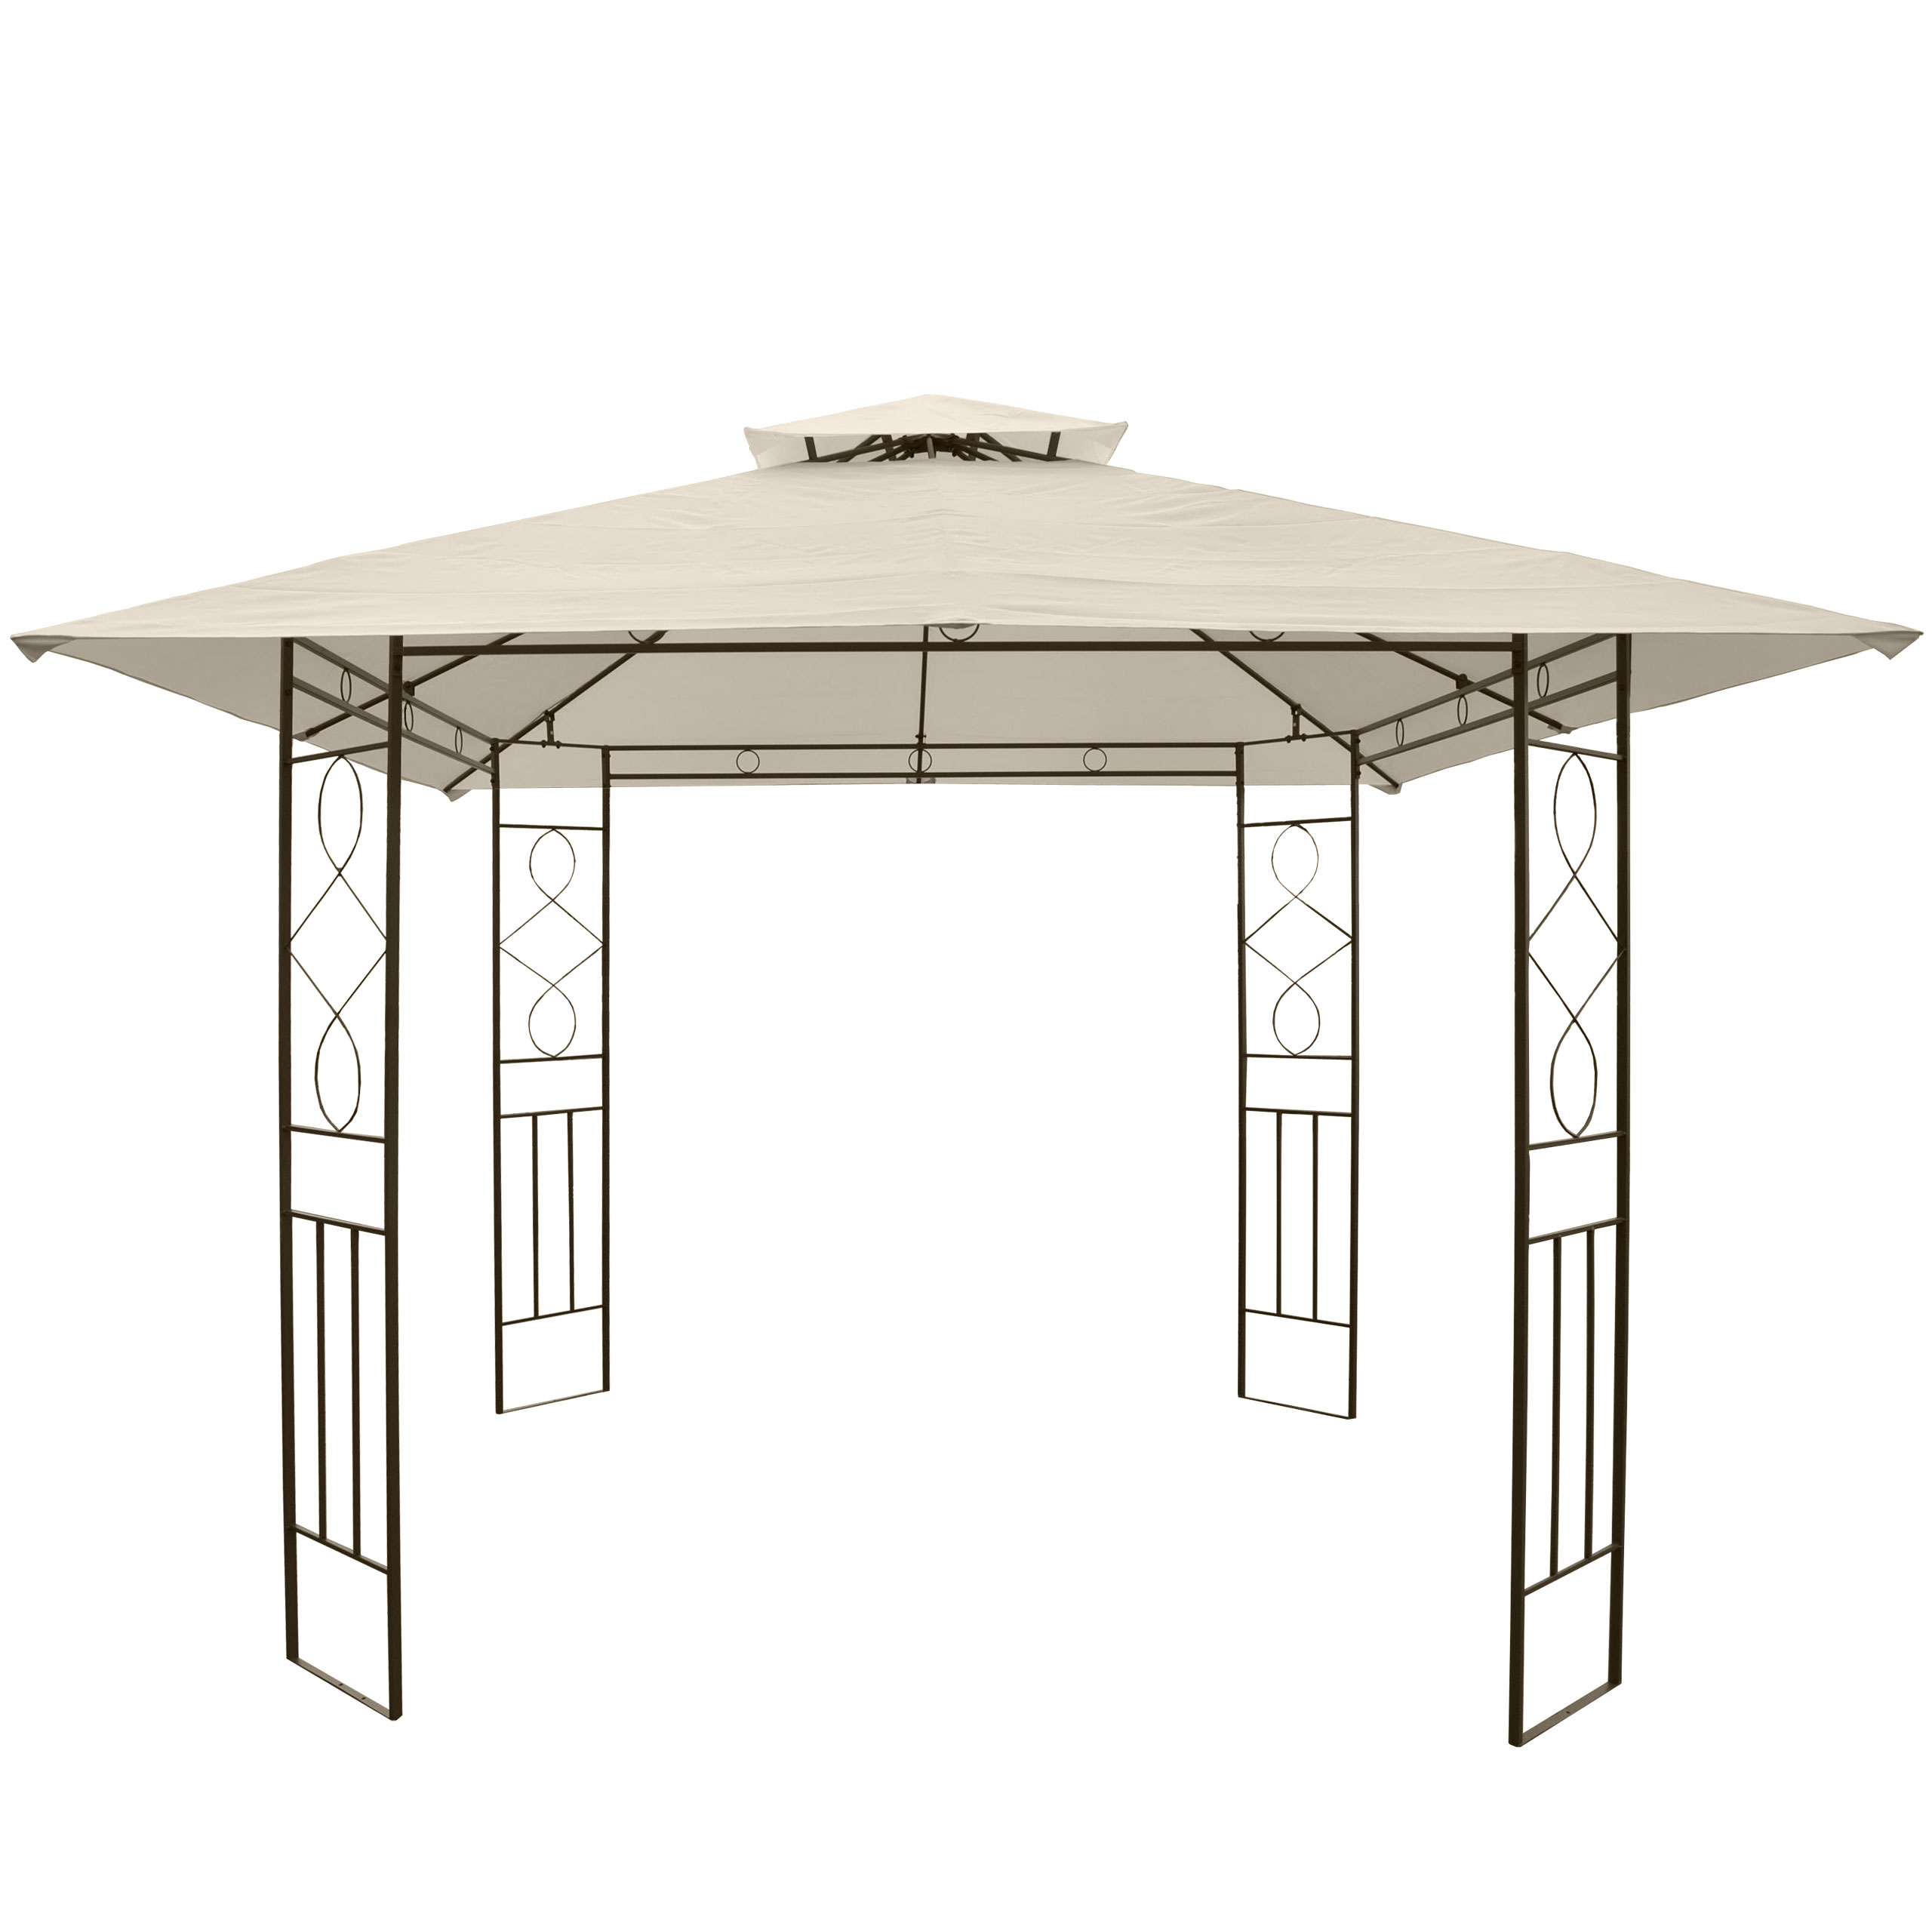 pergola montilla garten pavillon stabiles stahl gestell 3x3m ebay. Black Bedroom Furniture Sets. Home Design Ideas